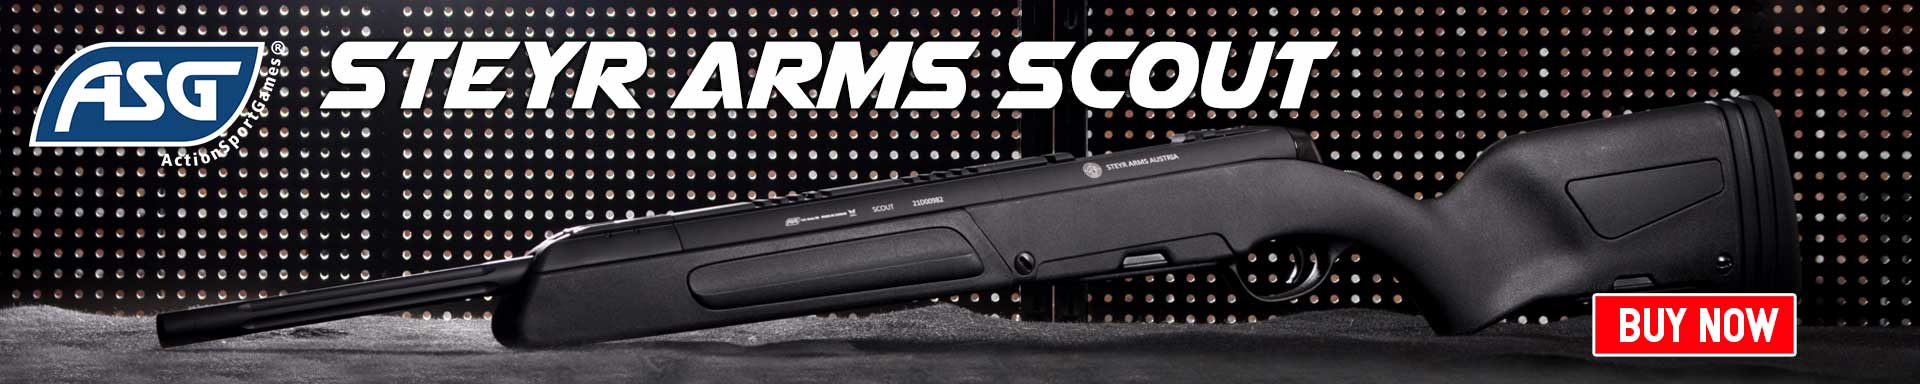 STEYR ARMS SCOUT AIRSOFT SNIPER RIFLE